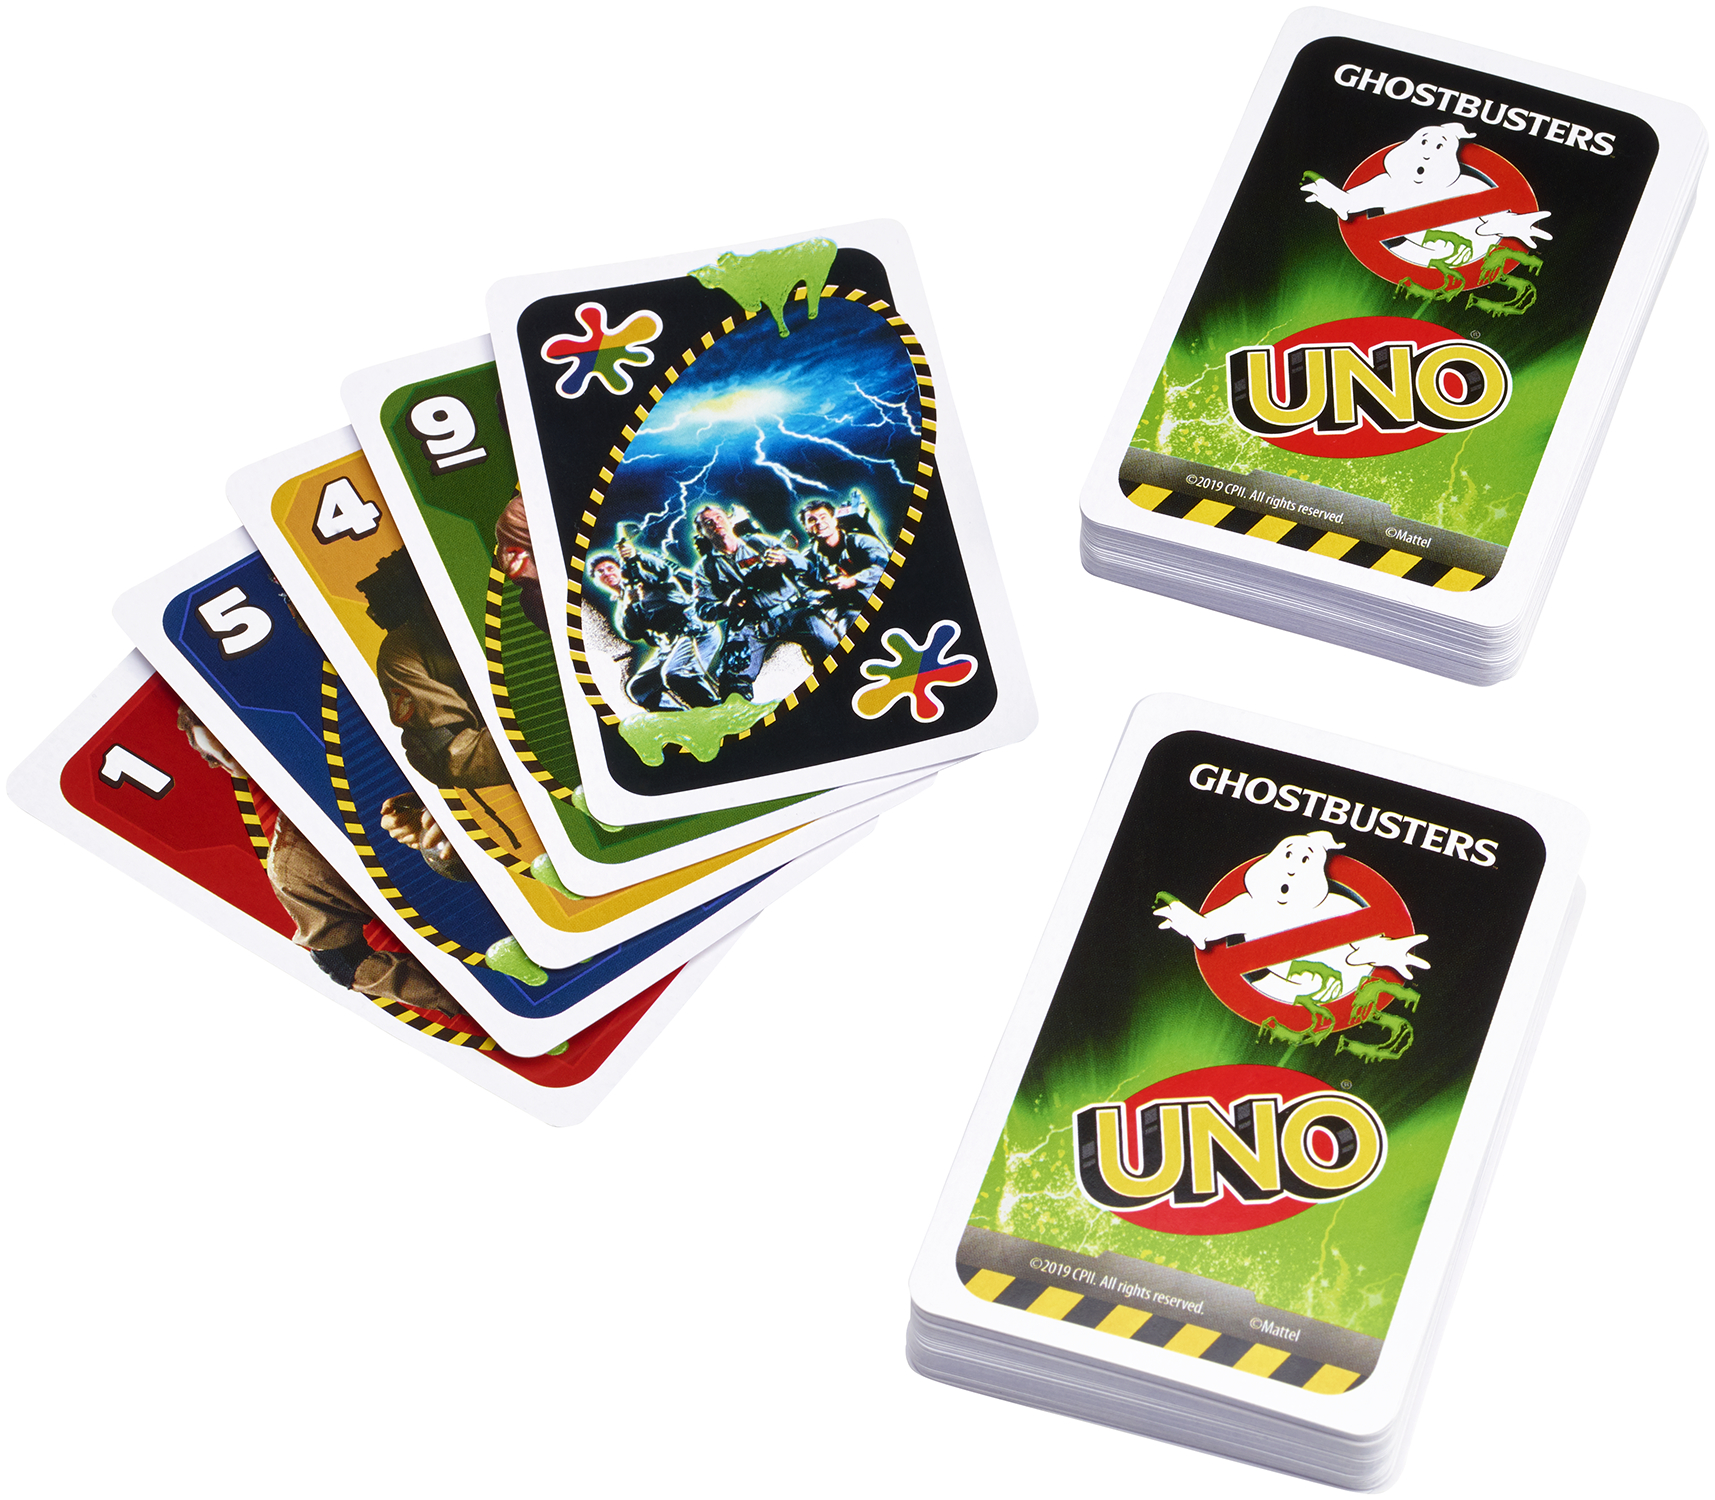 UNO GHOSTBUSTERS CARD GAME CS